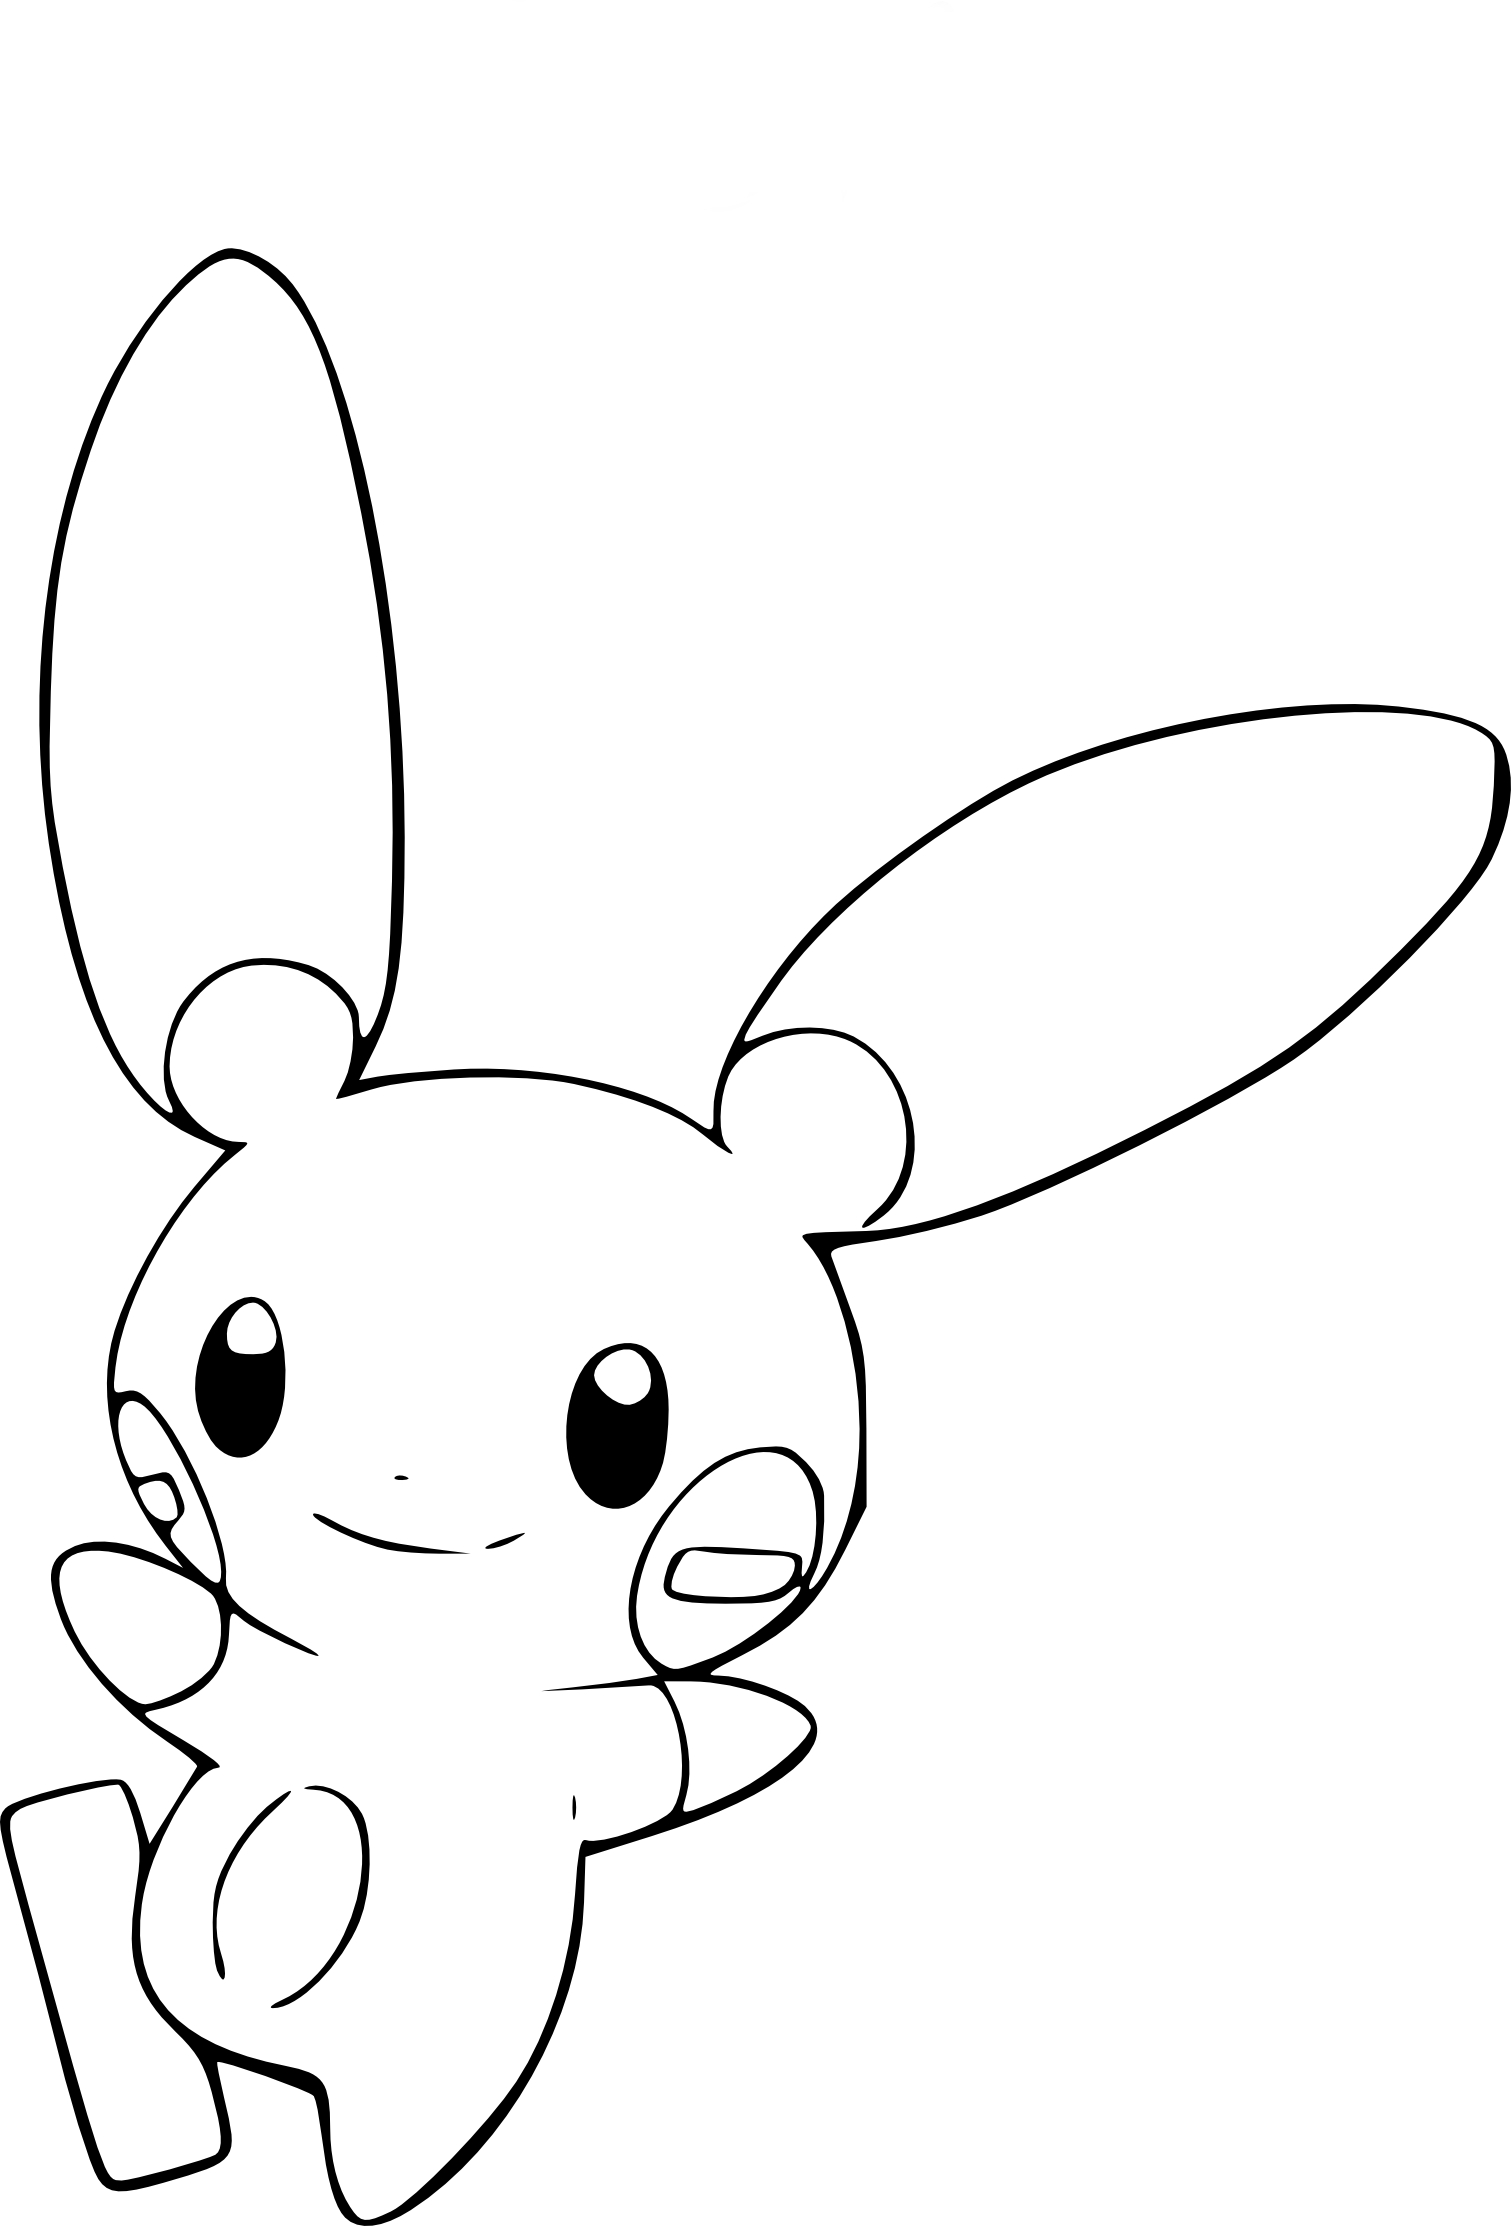 riolu pokemon coloring pages - photo#34